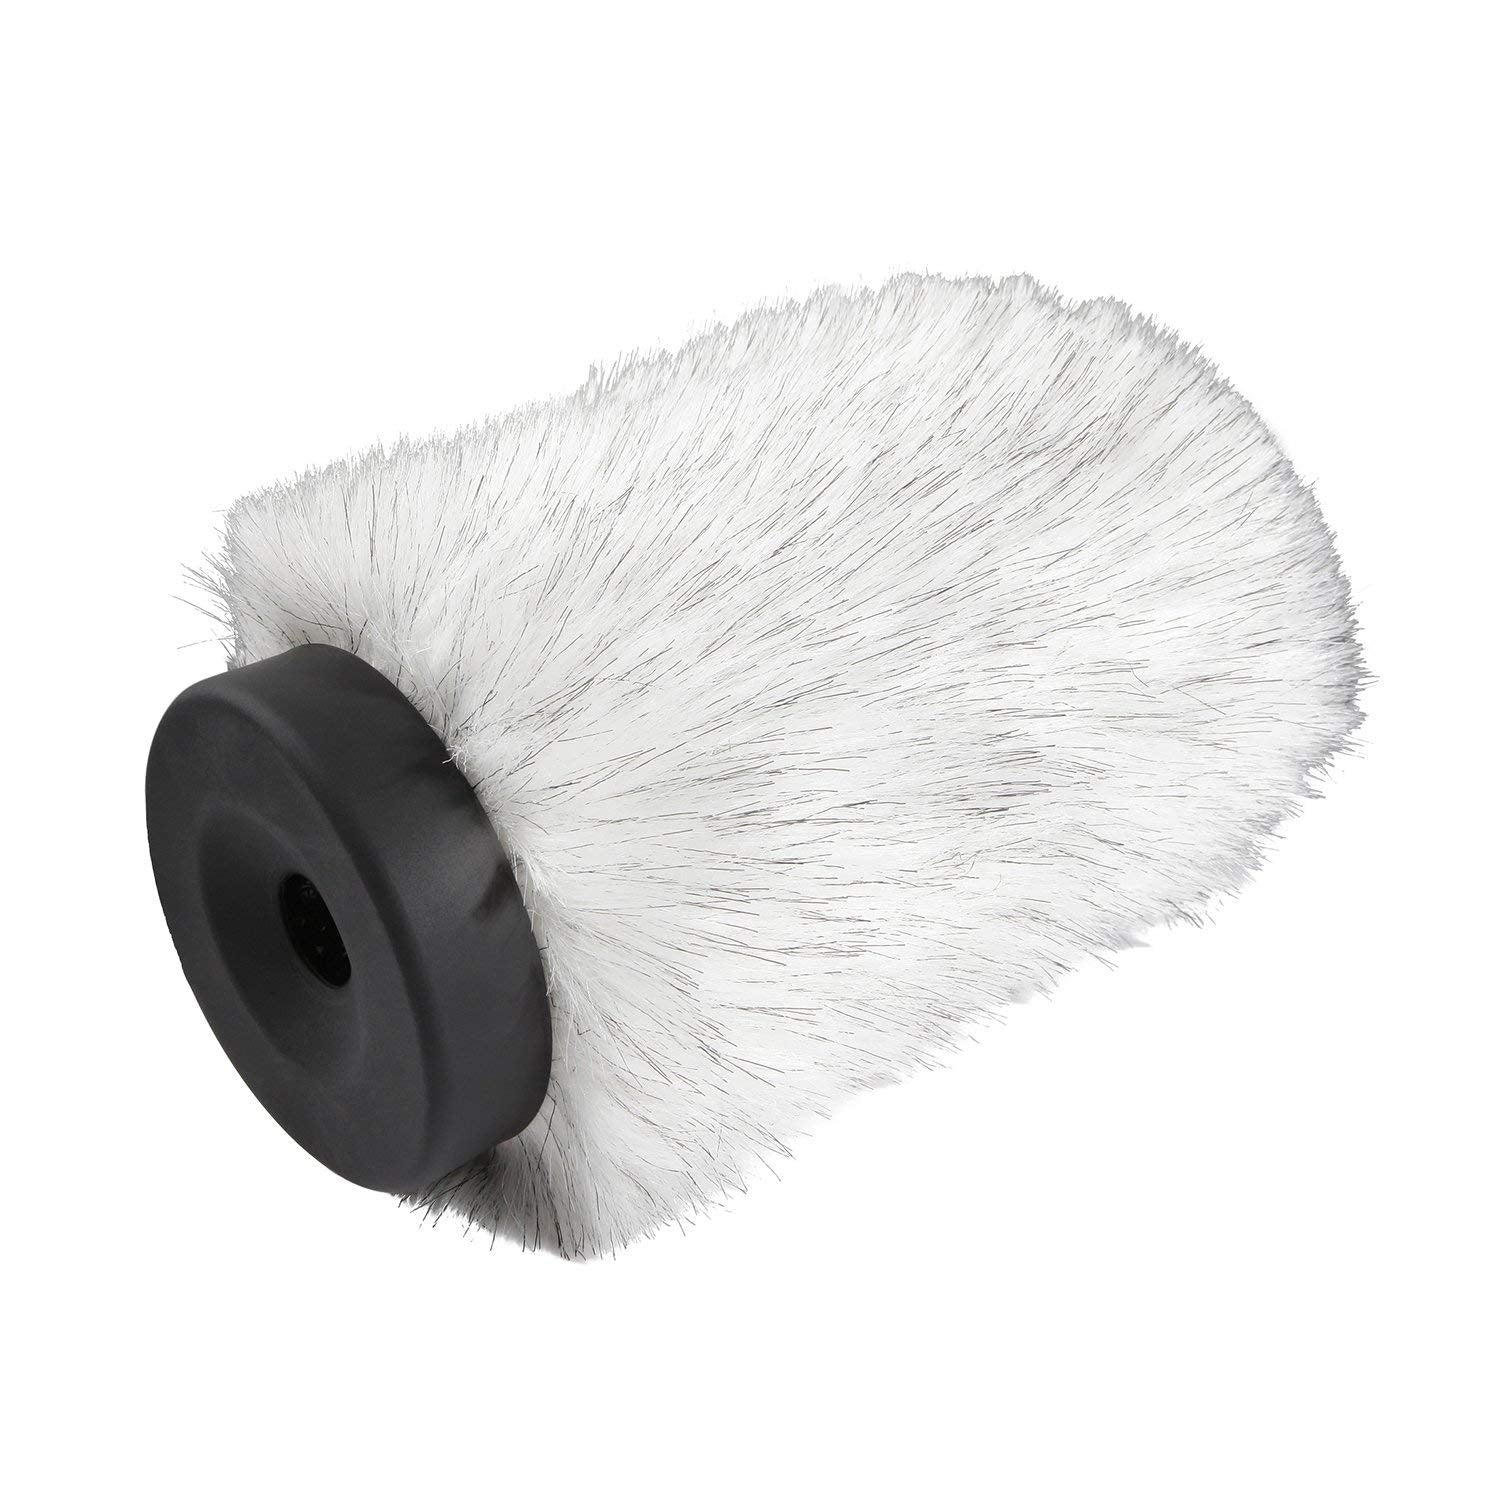 BOYA BY-P140 Furry Outdoor Interview Windshield Muff for Shotgun Capacitor Microphones (Inside Depth 5.6)